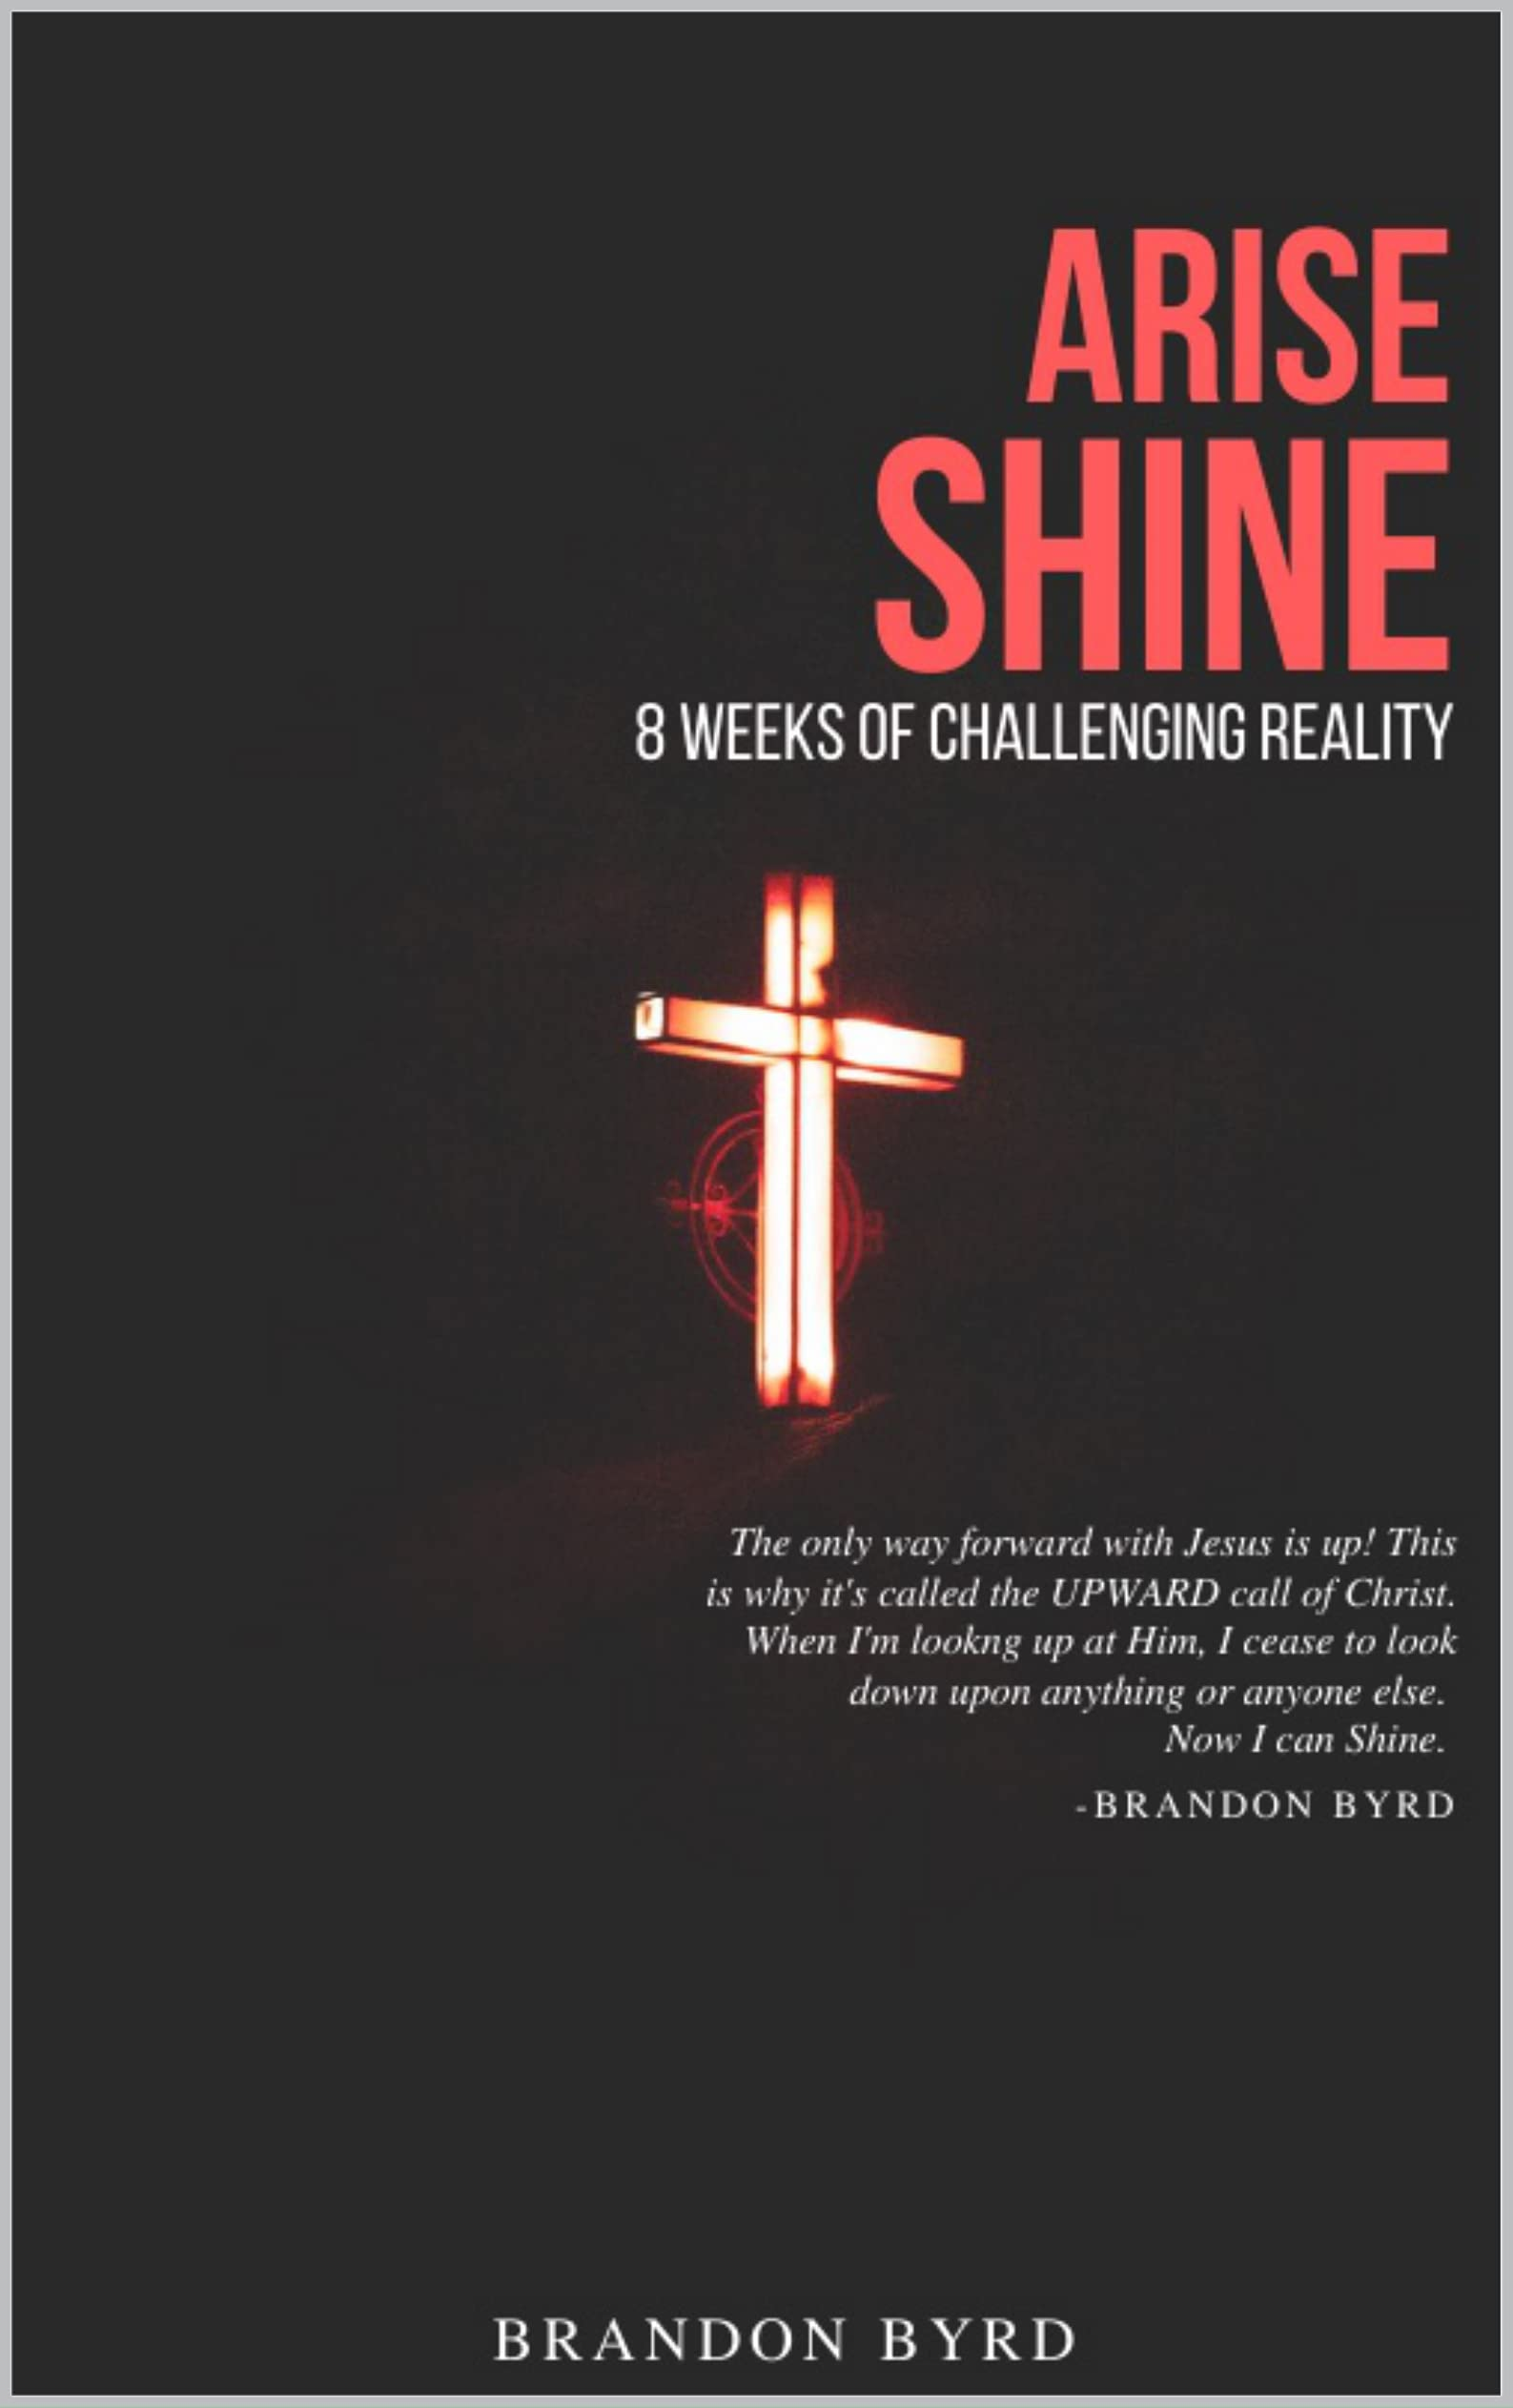 Arise Shine: 8 Weeks of Challenging Reality